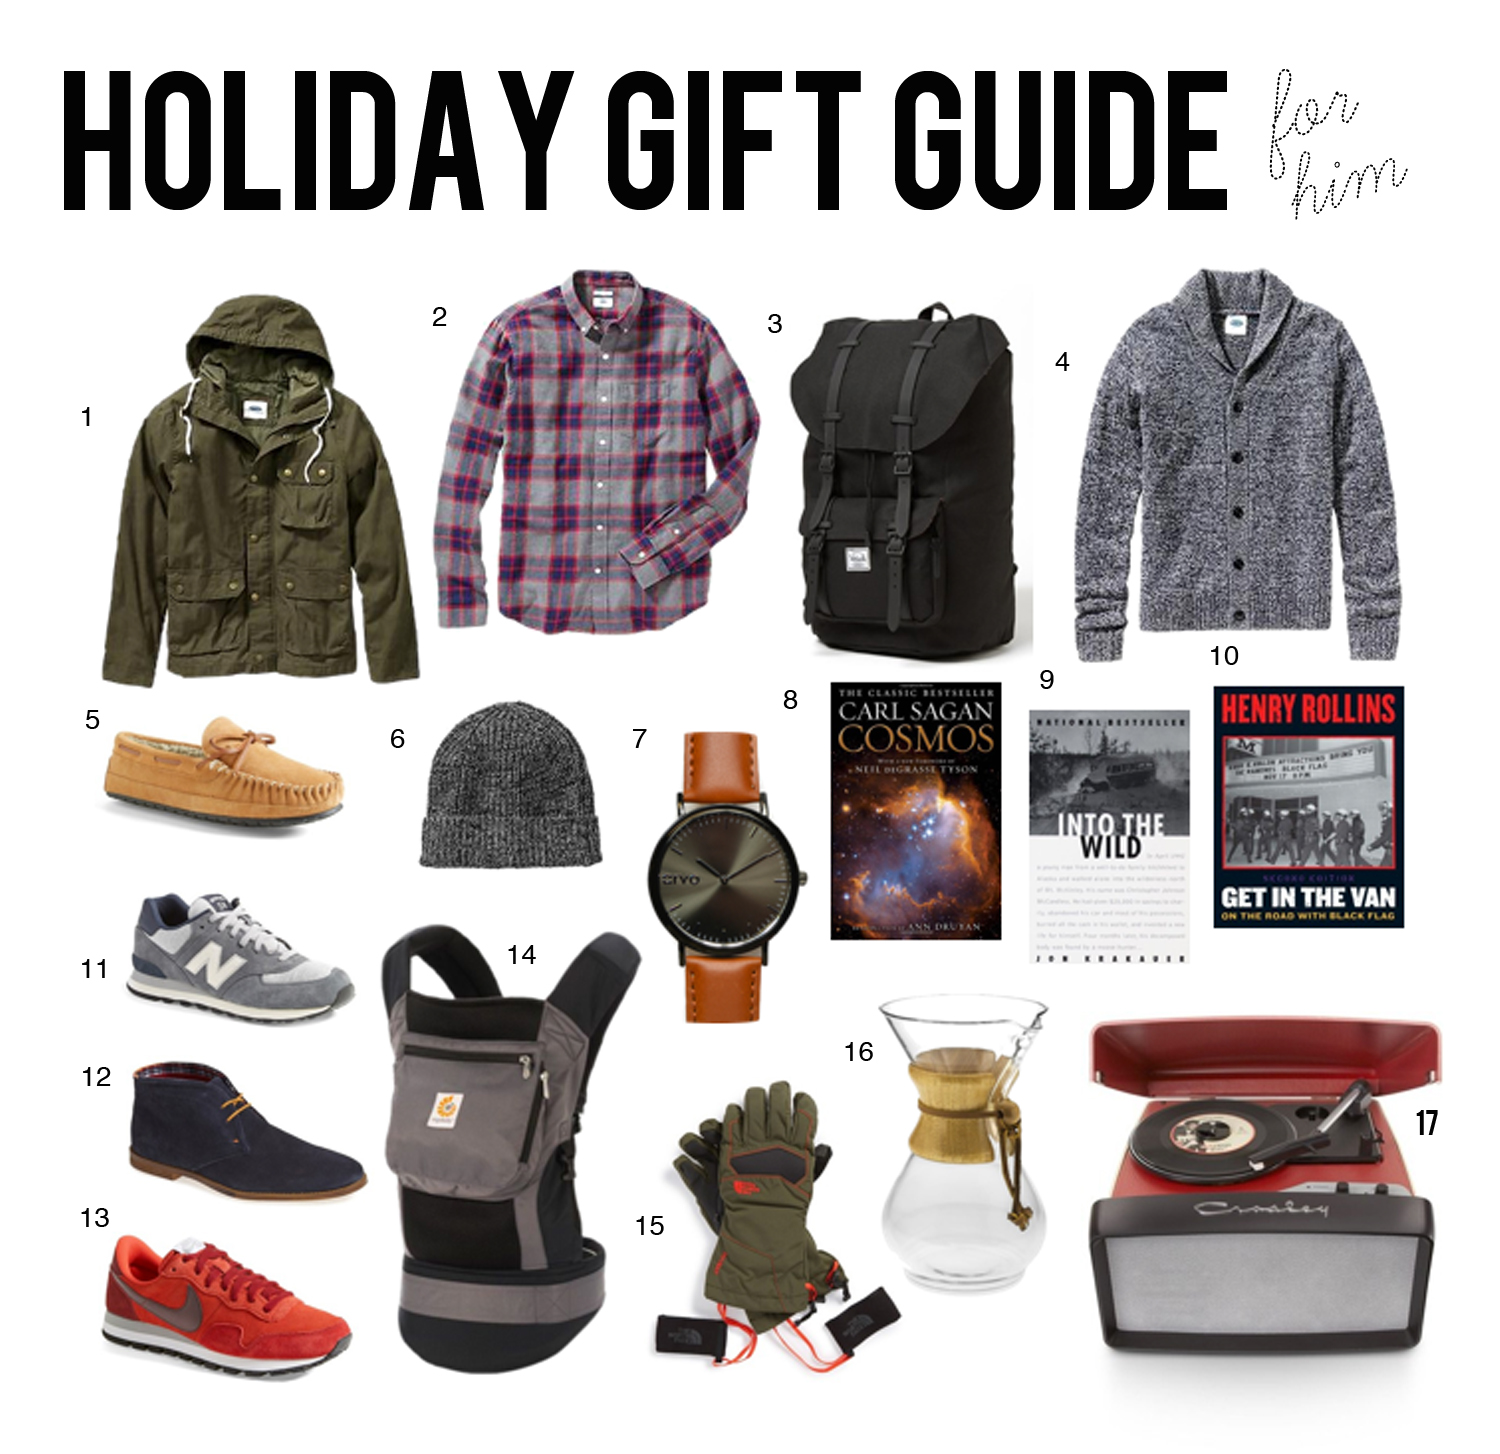 Sometimes Sweet Holiday Gift Guide For Him